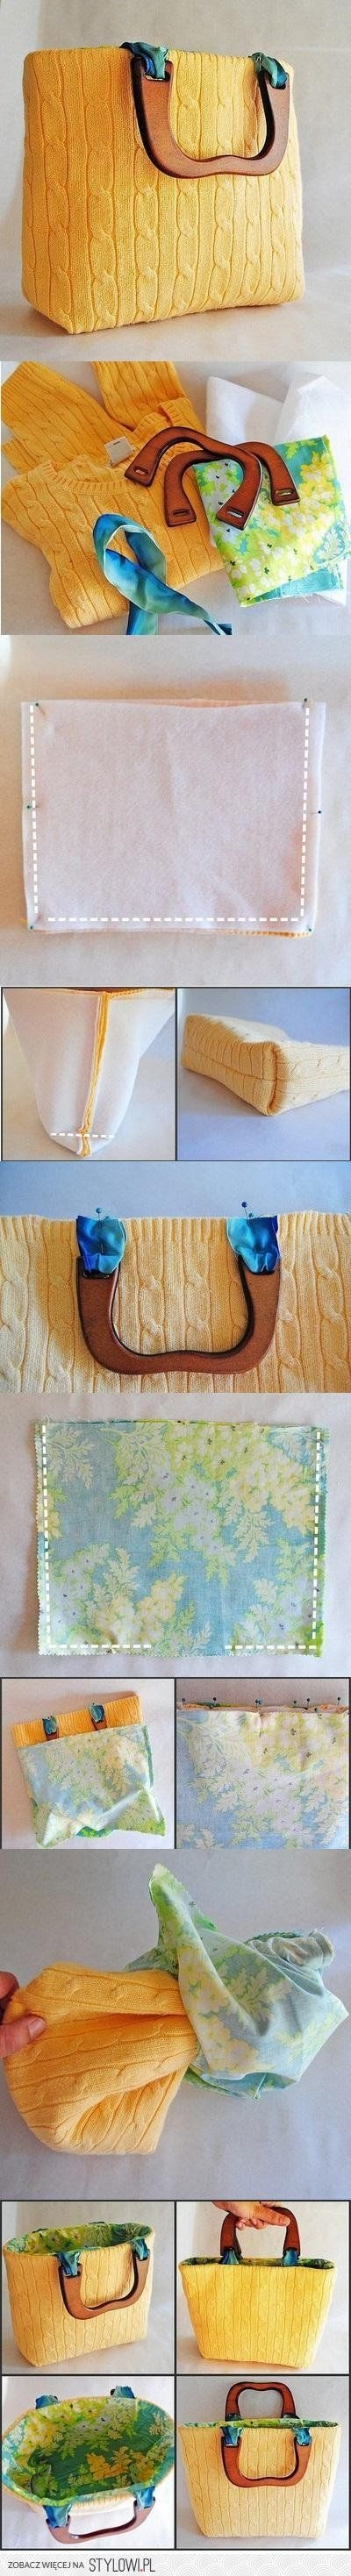 Borsetta ricavata da un vecchio maglione ~ Cute purse out of an old sweater! #DIY